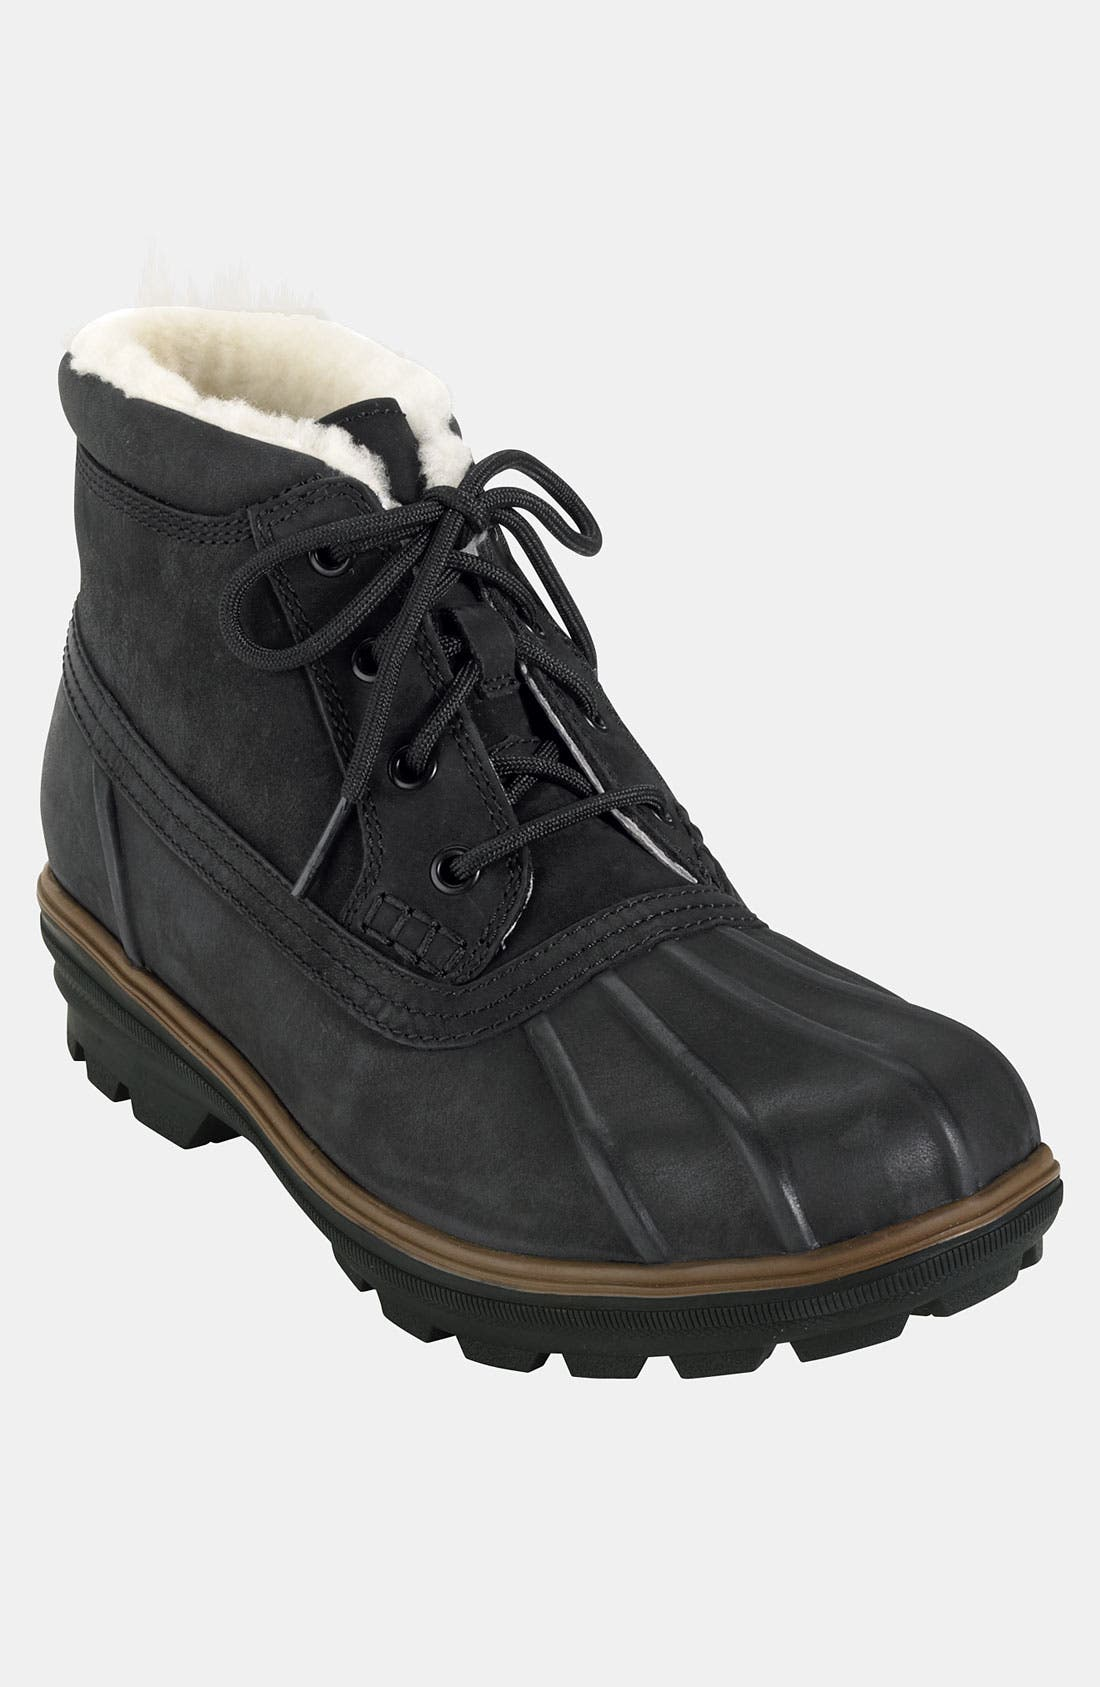 Main Image - Cole Haan 'Air Scout' Snow Boot